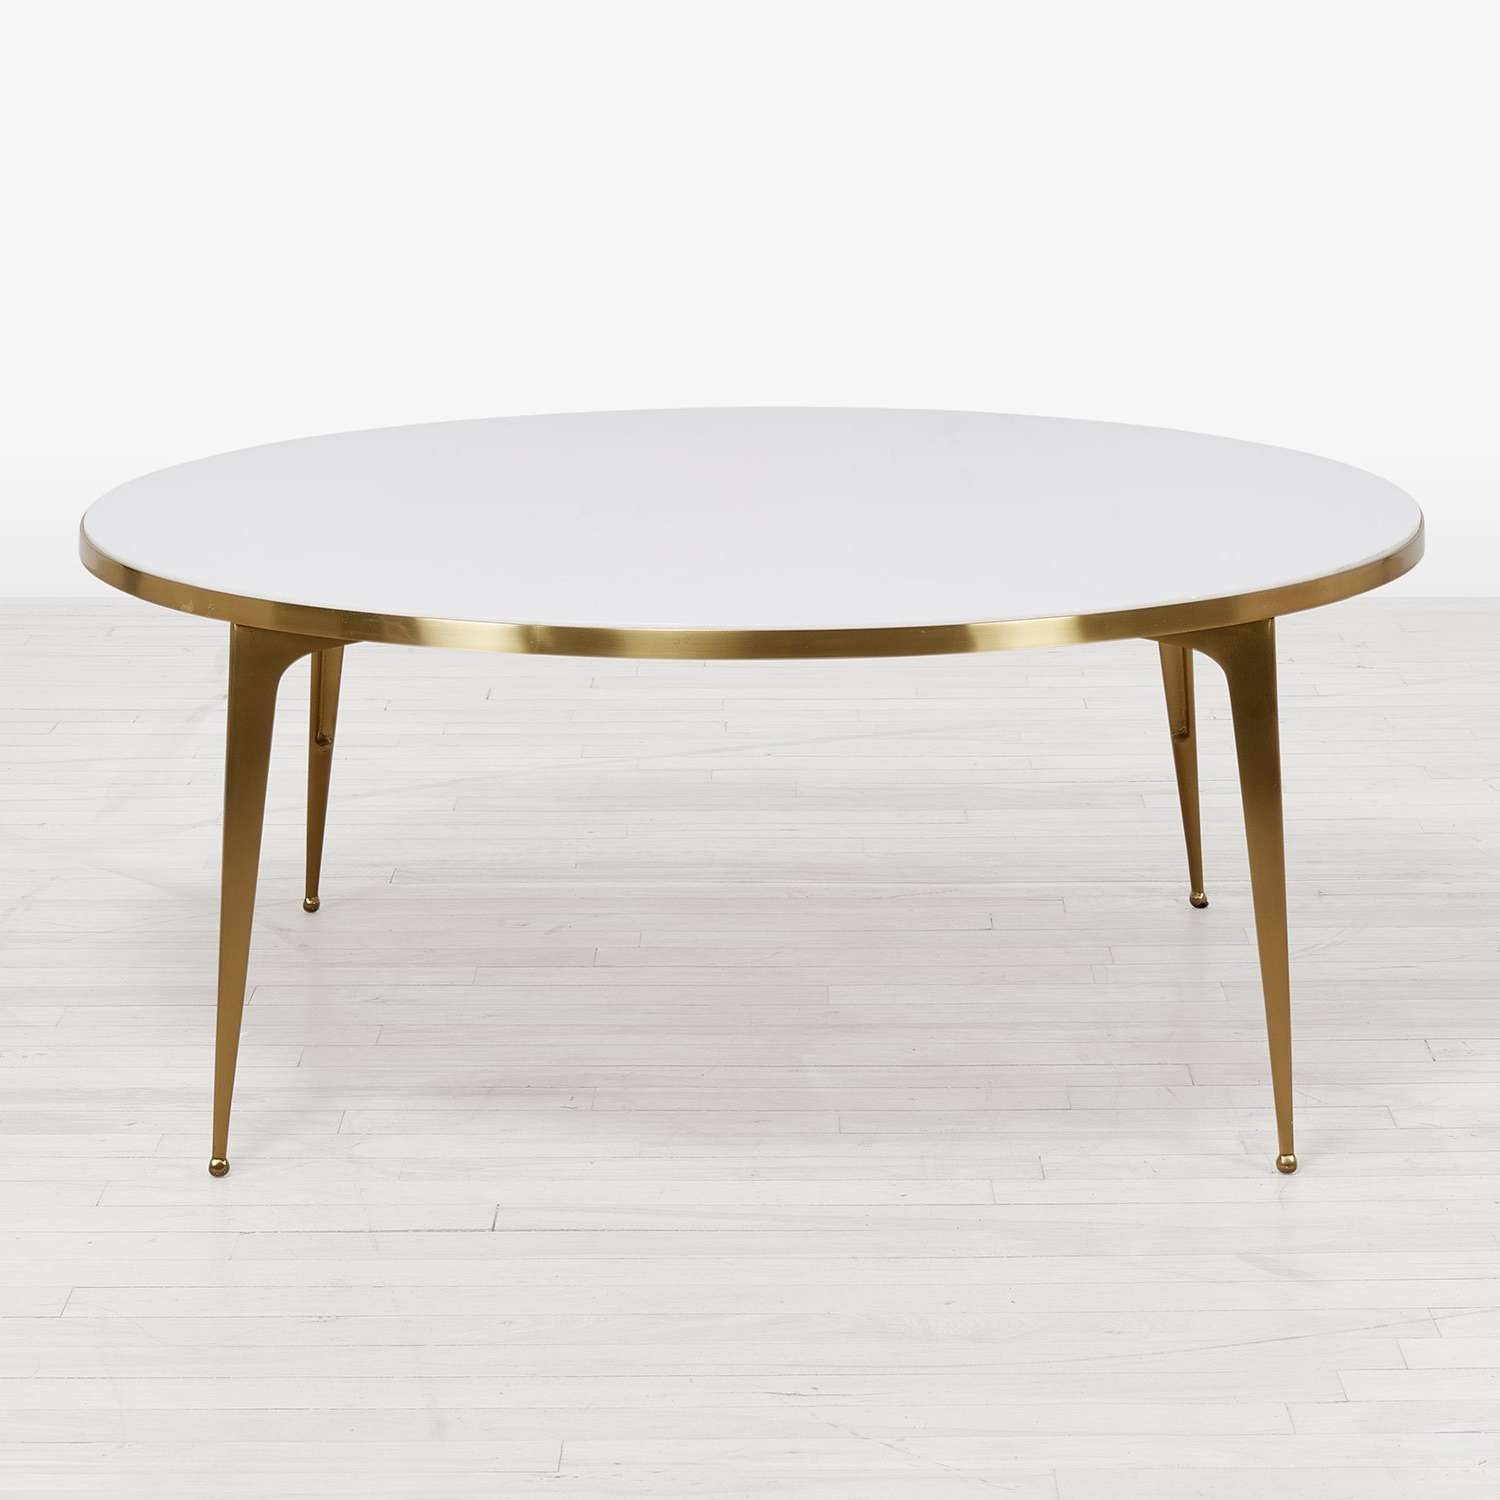 Most Popular Black And Grey Marble Coffee Tables In Coffee Tables : Mirrored Coffee Table Grey Marble Round Brass Sets (View 15 of 20)